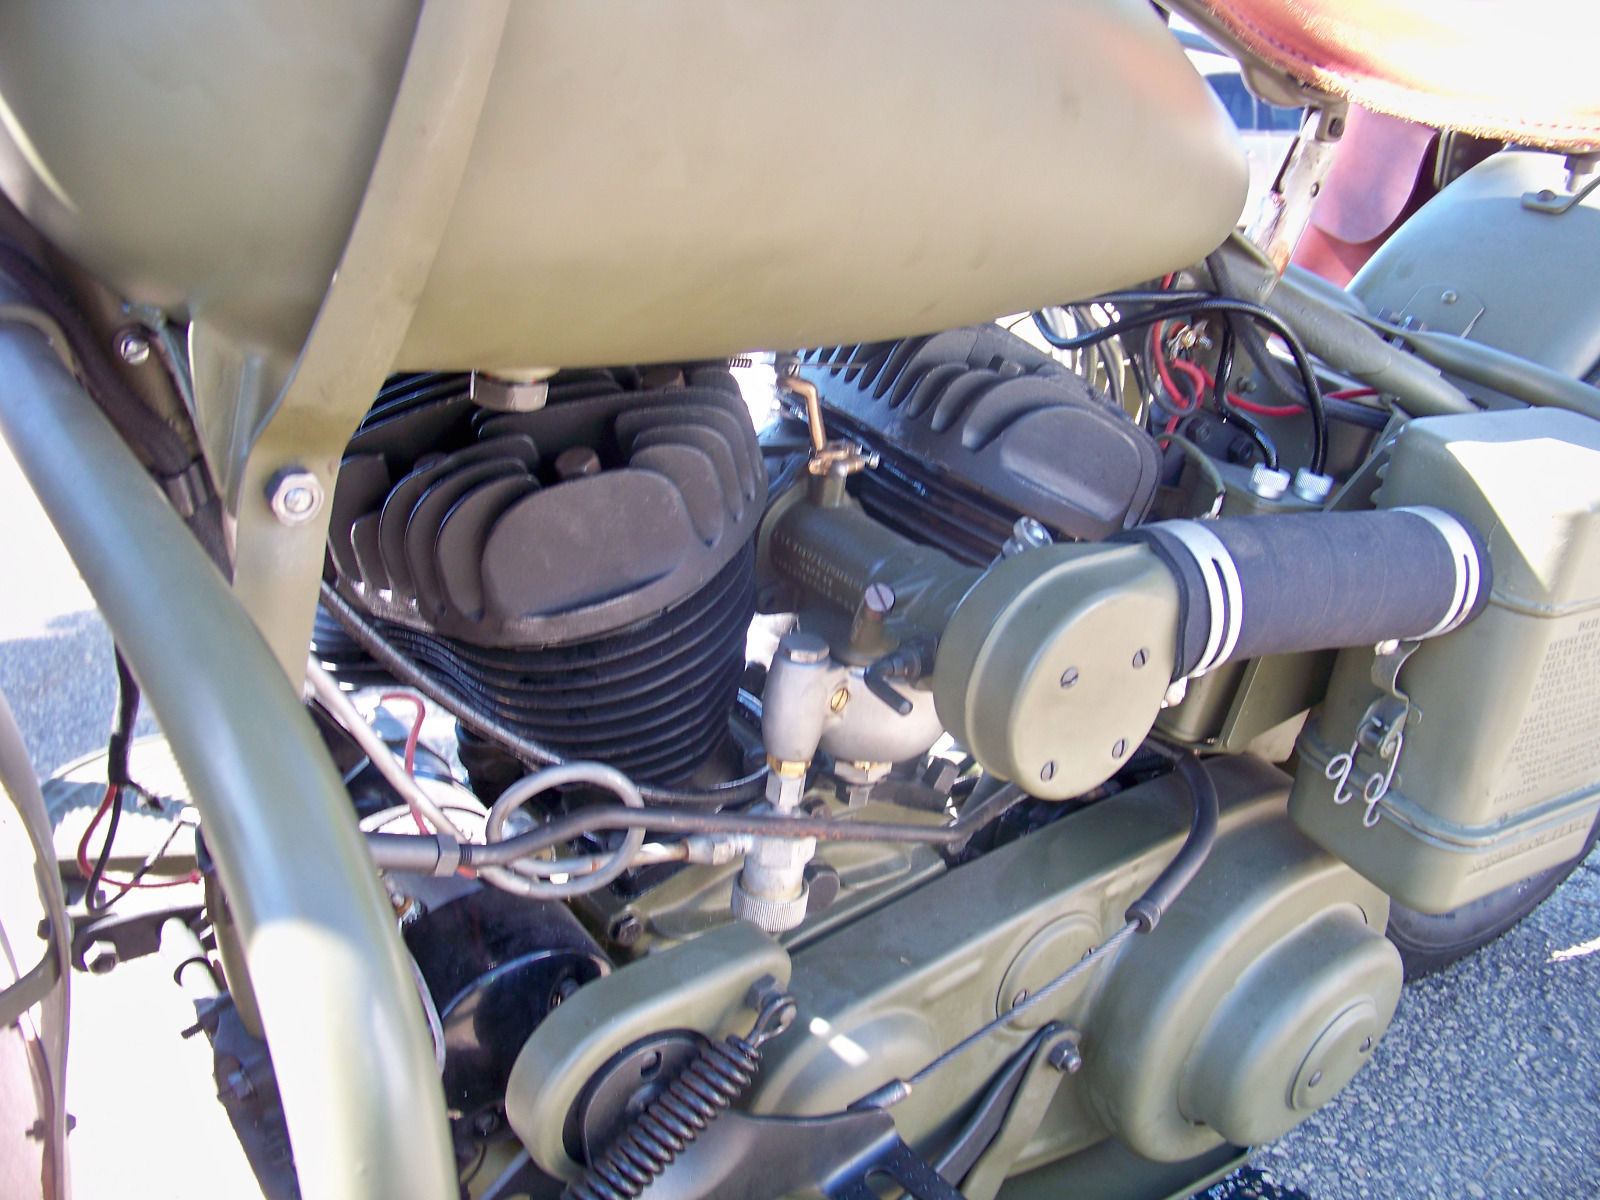 The WLA motorcycles used the new version of Harley Davidson's flathead engine of the thirties with high compression engines.